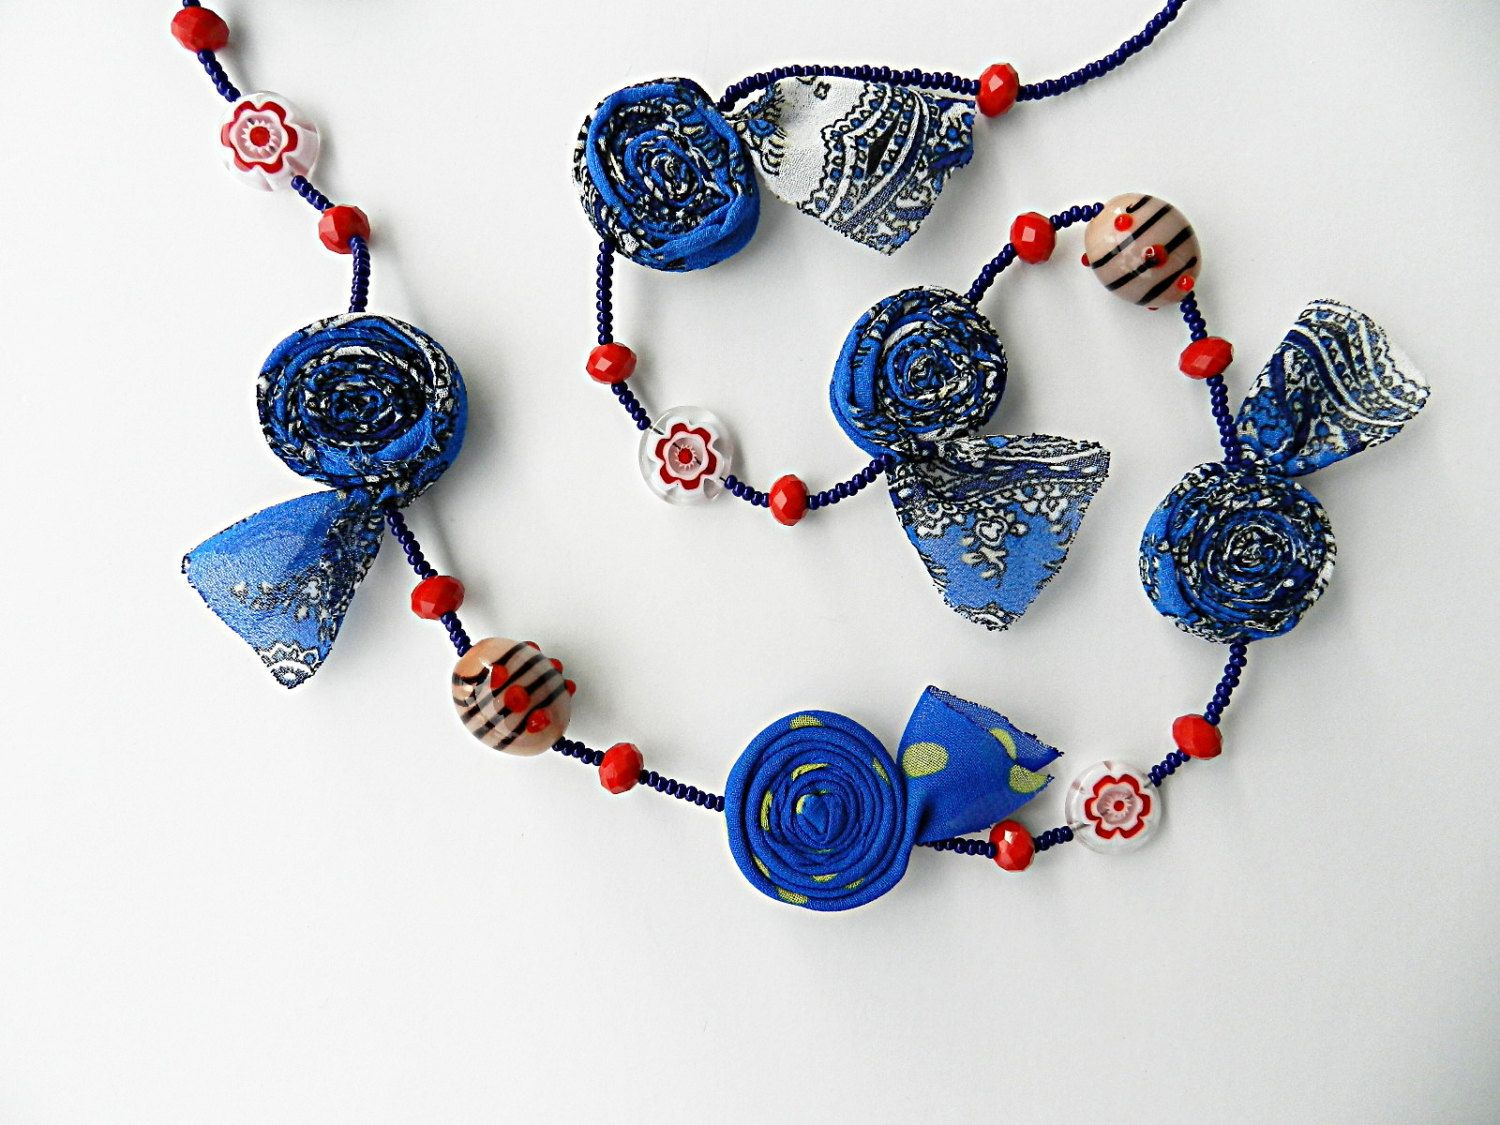 necklace necklaces on jewelry best images metal jewellery noorkimit pinterest textile